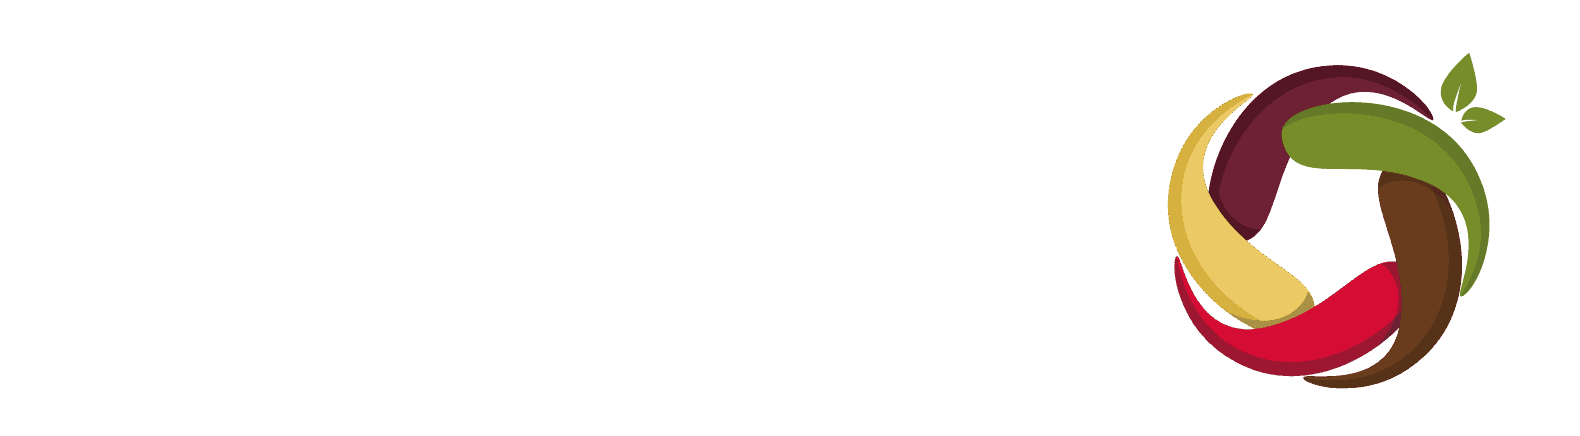 DrNatura-SuperGreens HU